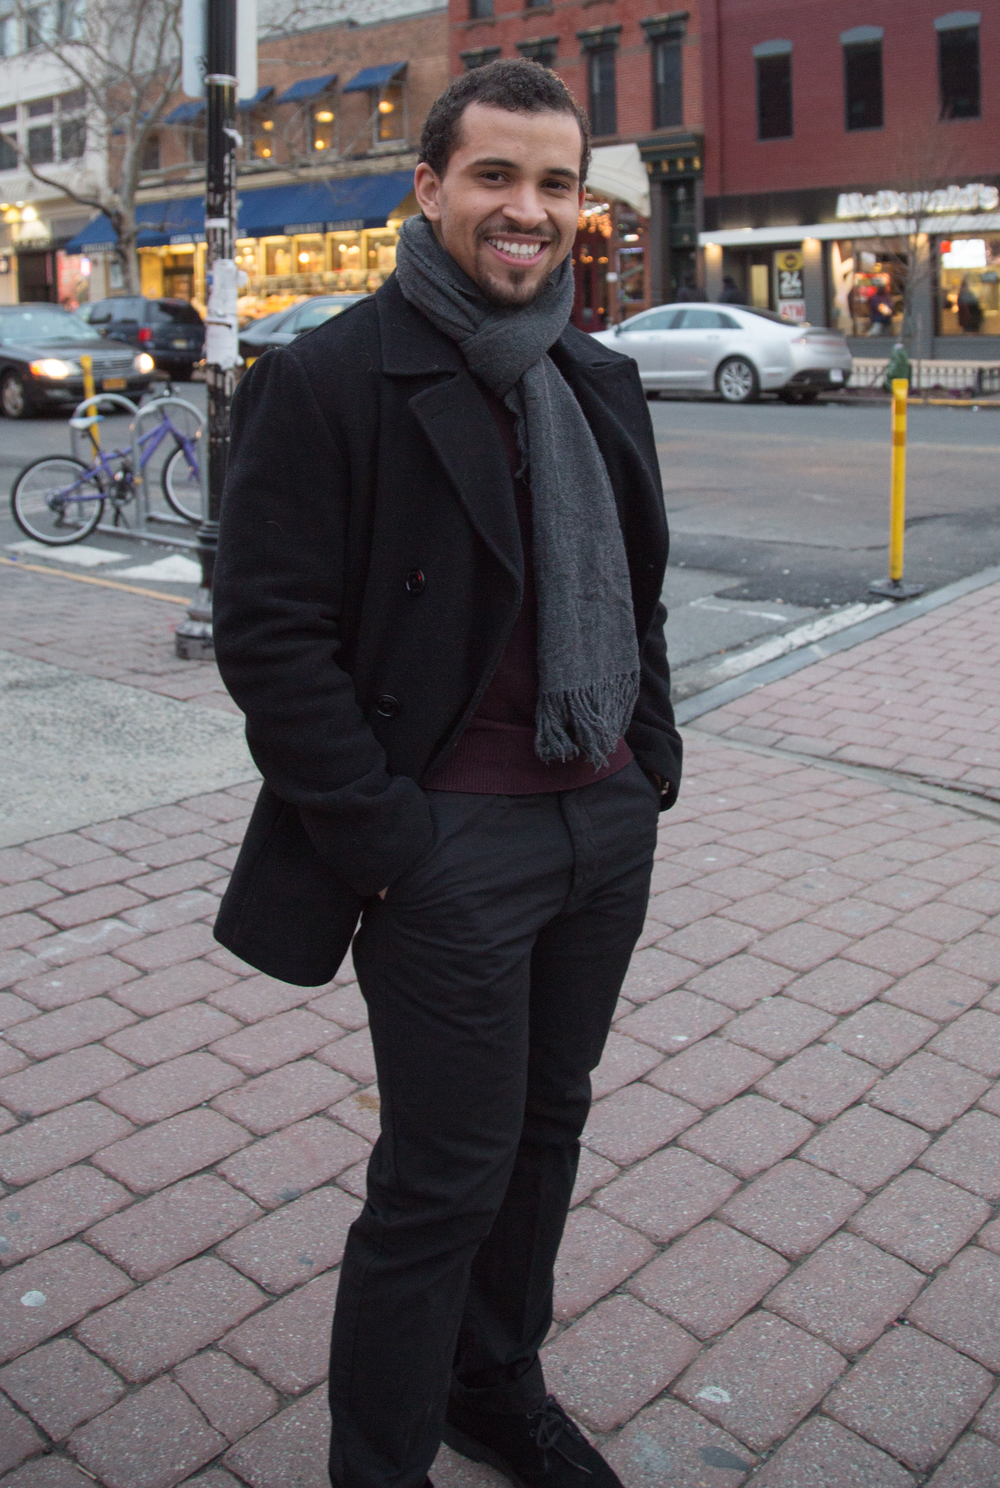 Sweater: American Eagle, Pants: H&M, Coat: Kenneth Cole, Scarf: American Eagle, Shoes: Clarks